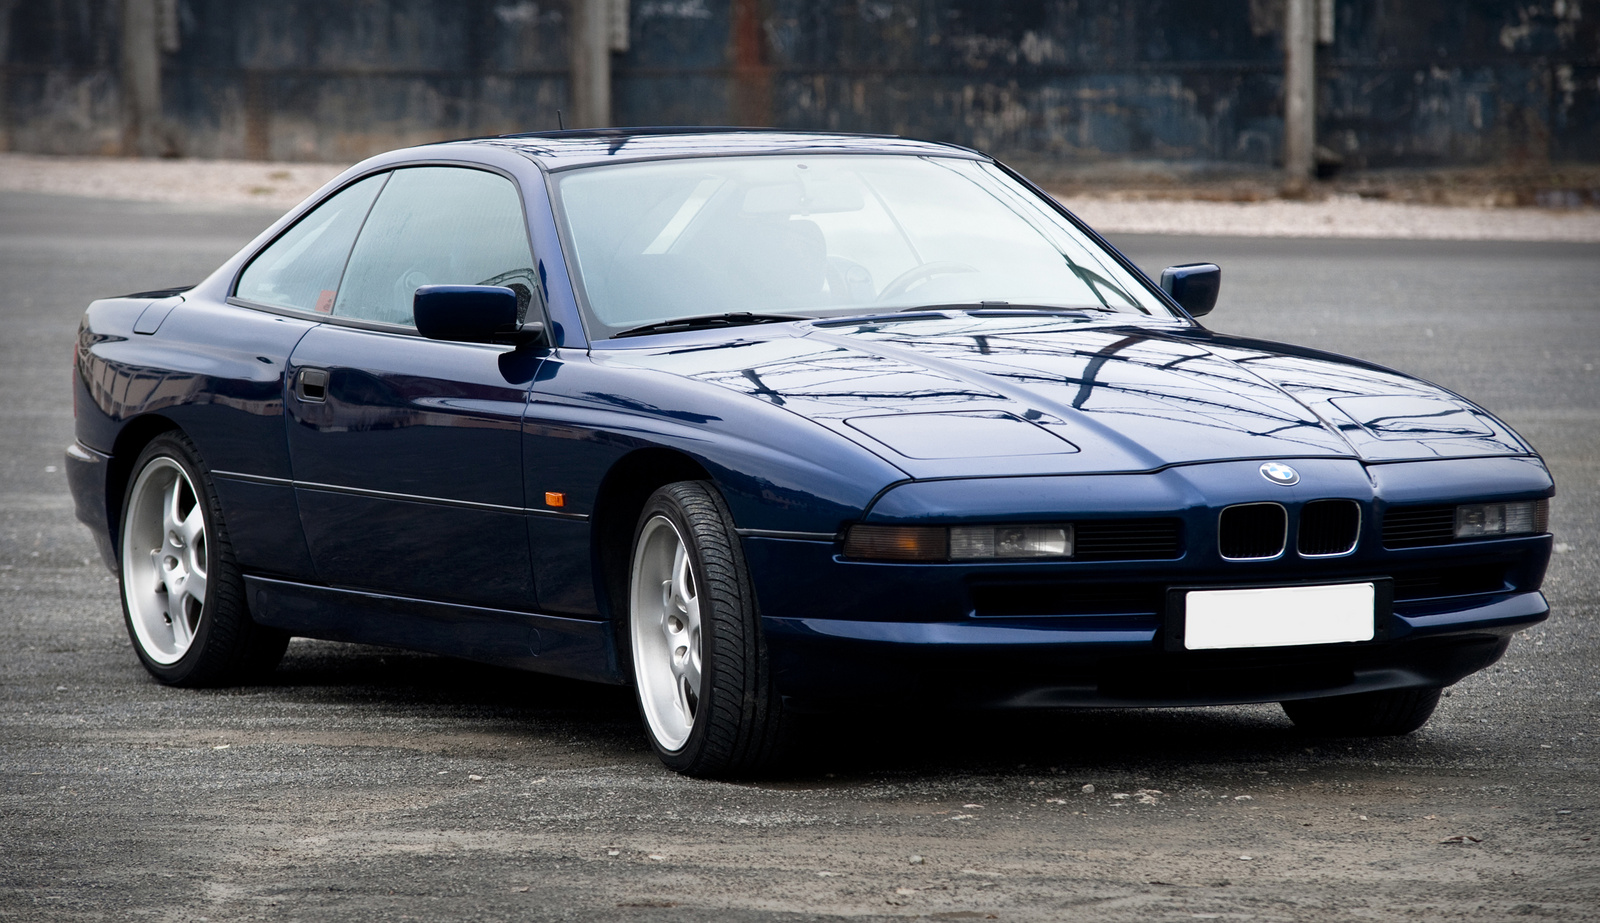 1992_bmw_8_series_850i-pic-7639971163538